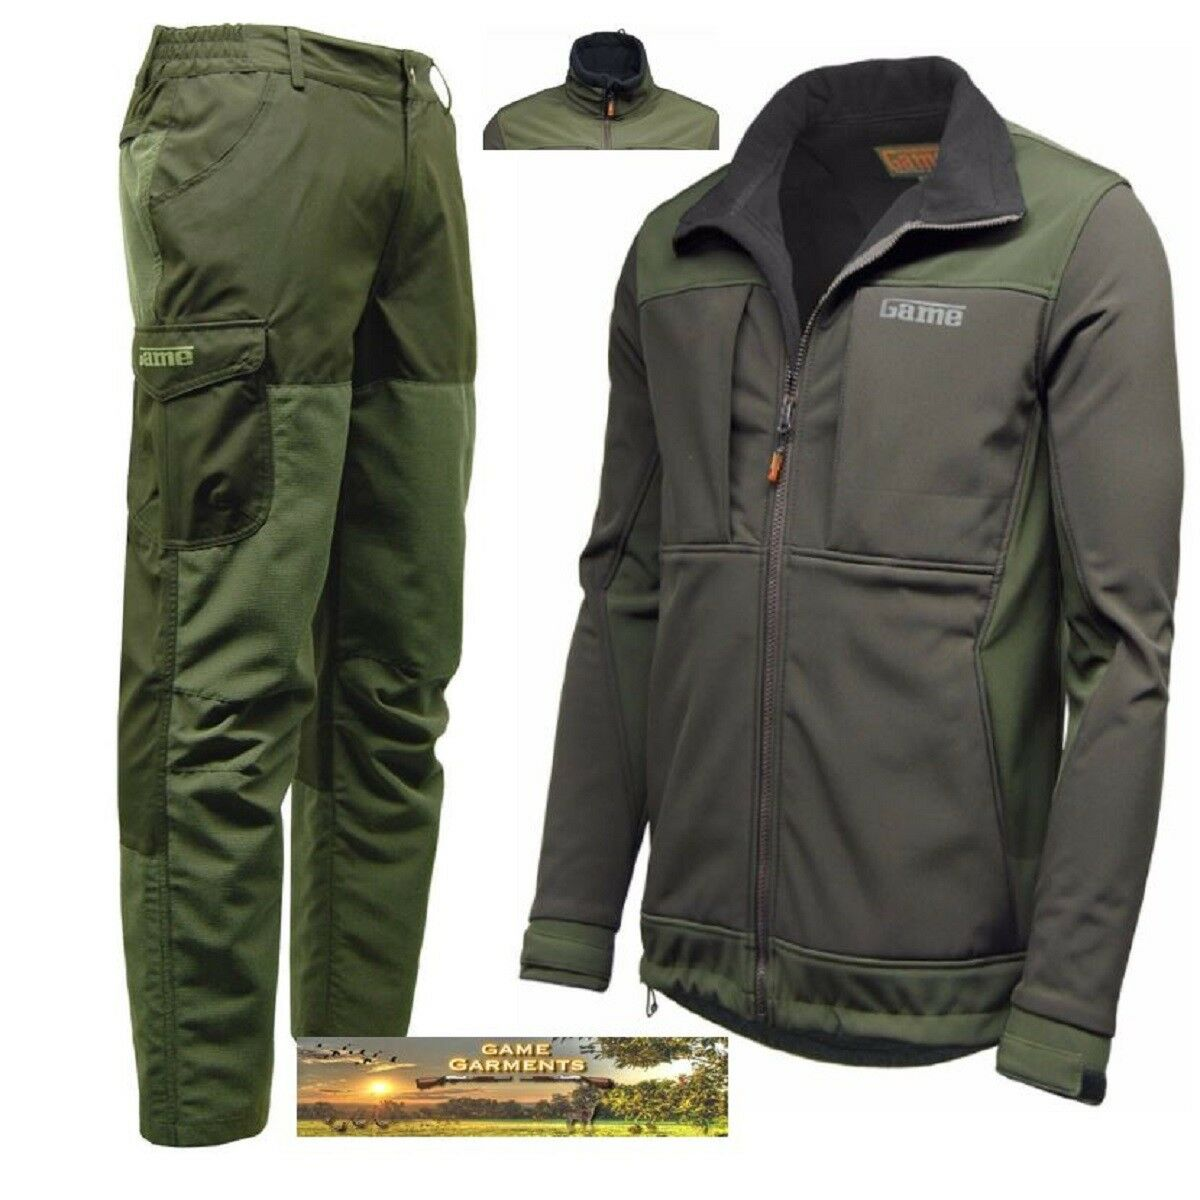 Game Excel Ripstop Trousers & Viper Softshell Jacket Combination Set, Shooting